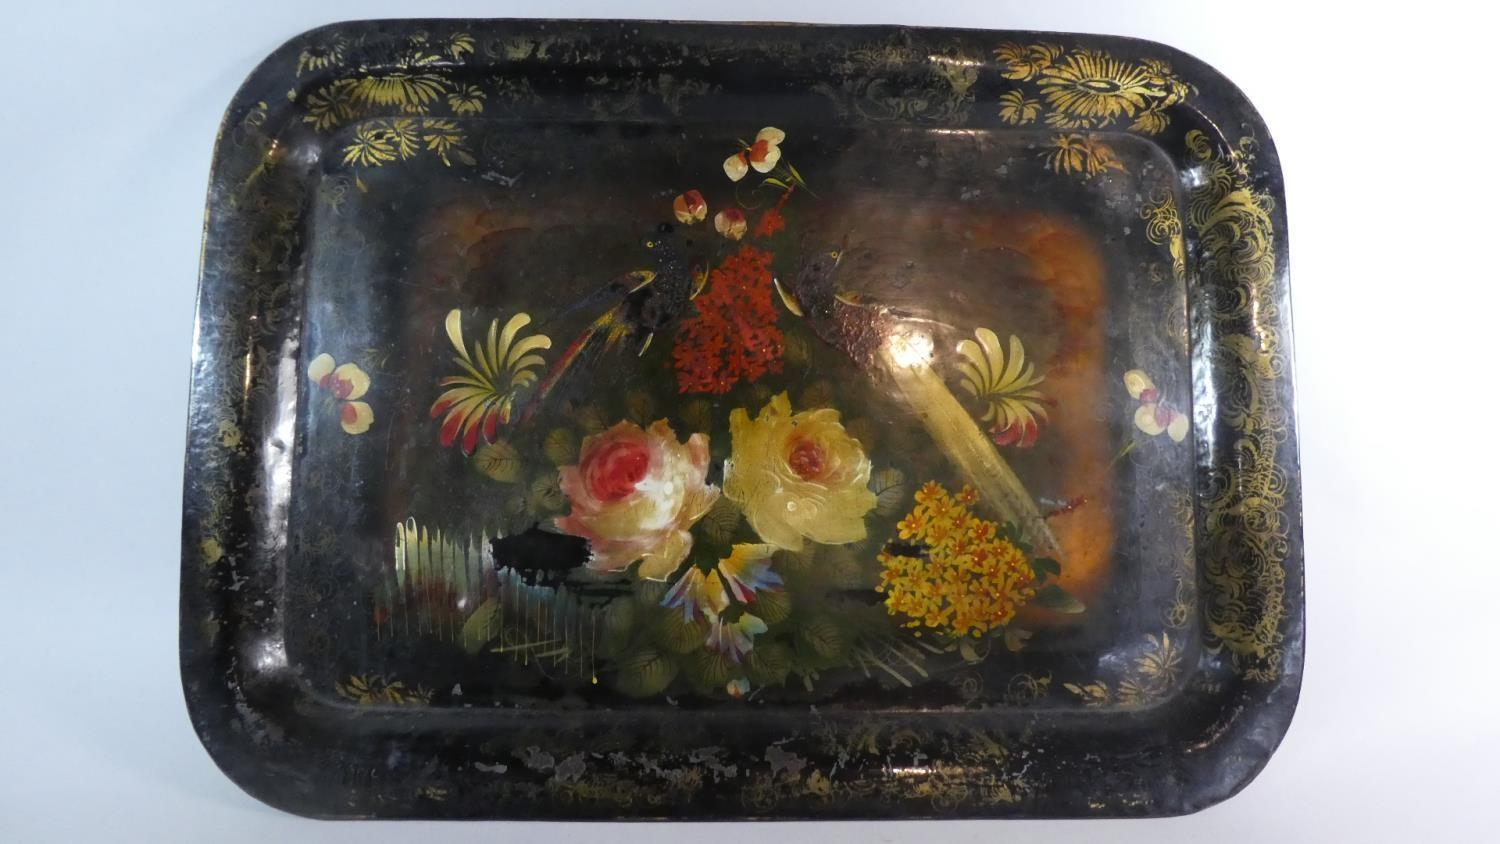 Lot 33 - An Early 20th Century Welsh Pontypool Toleware Tray Decorated with Typical Polychrome Painted